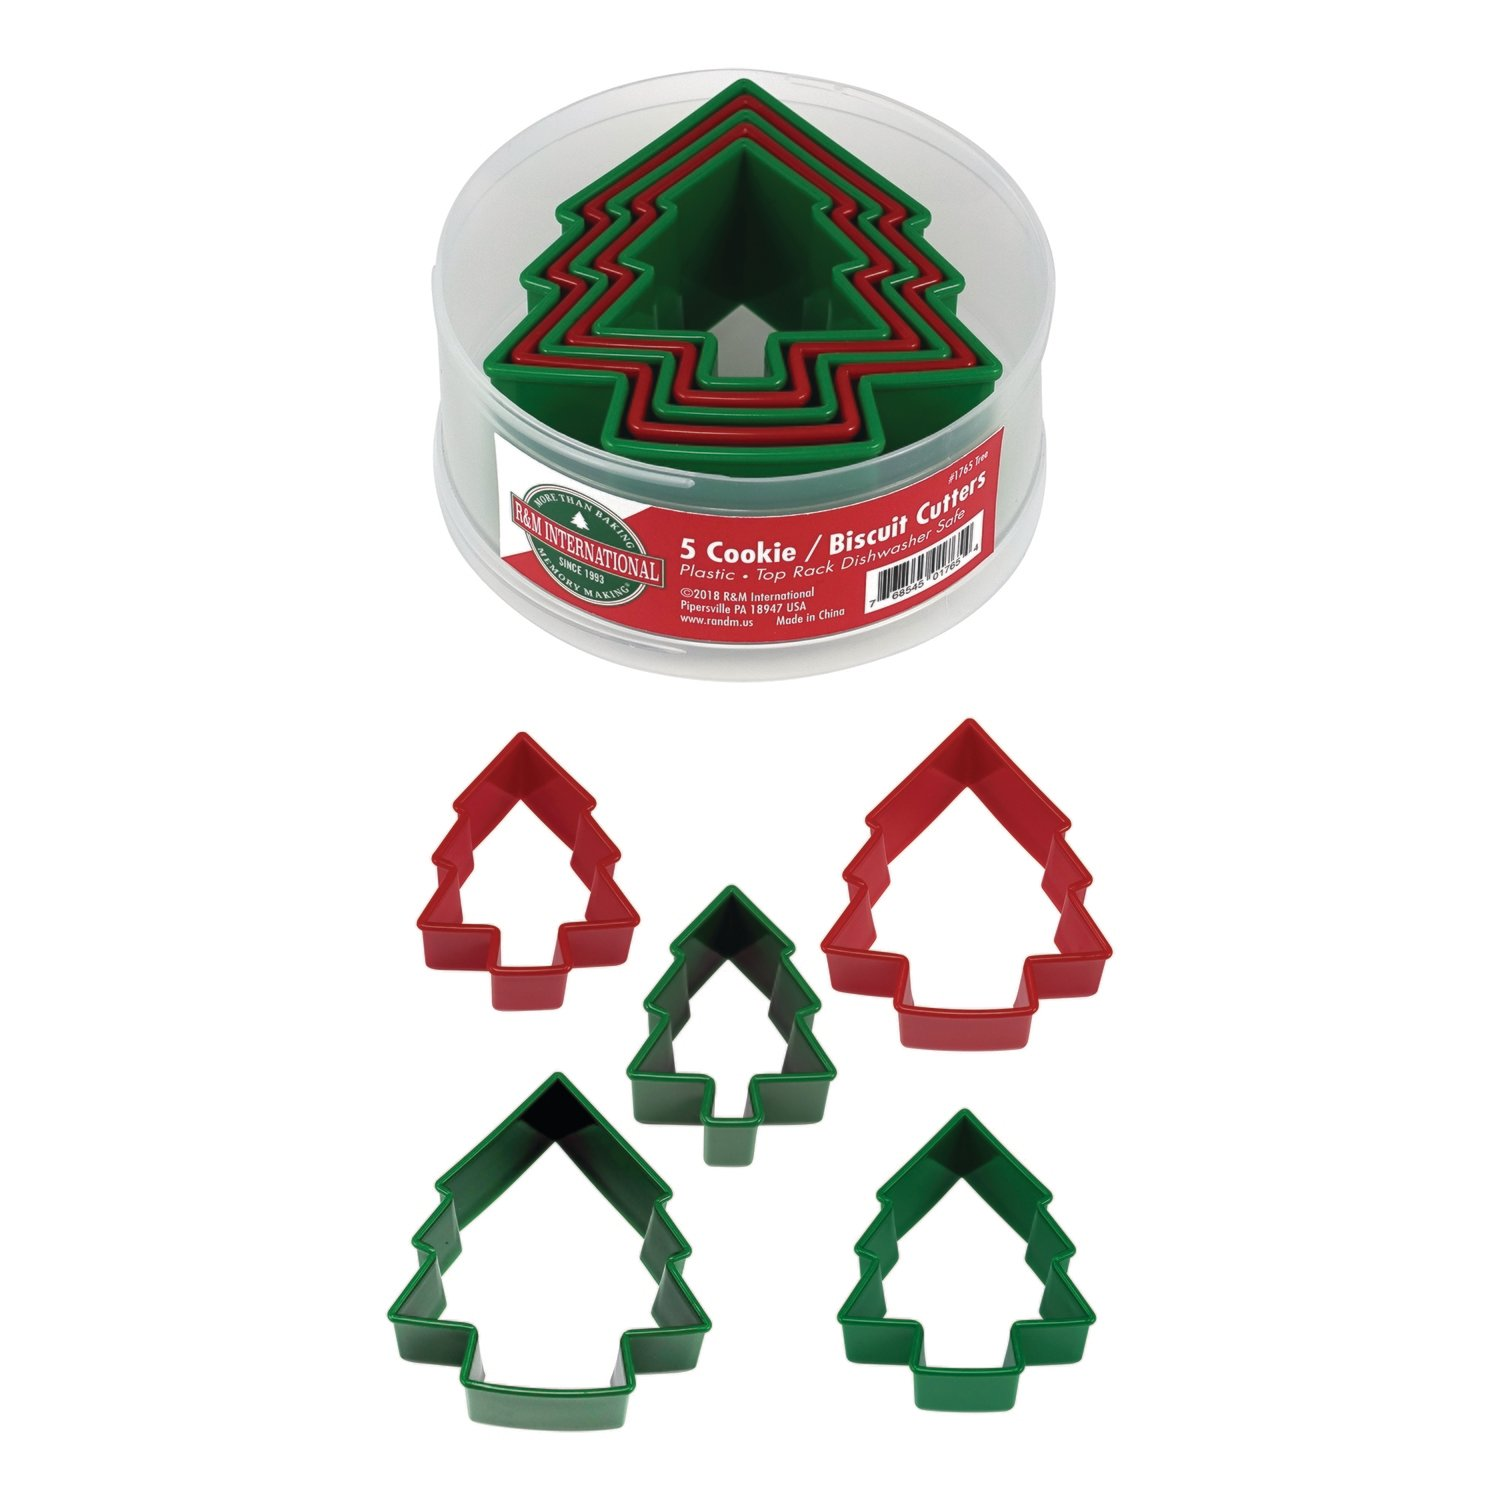 By AH -Set of Plastic Cookie Cutters -TREES -Σετ 5 τεμ πλαστικά κουπ πατ  Χριστουγεννιάτικα Δεντράκια